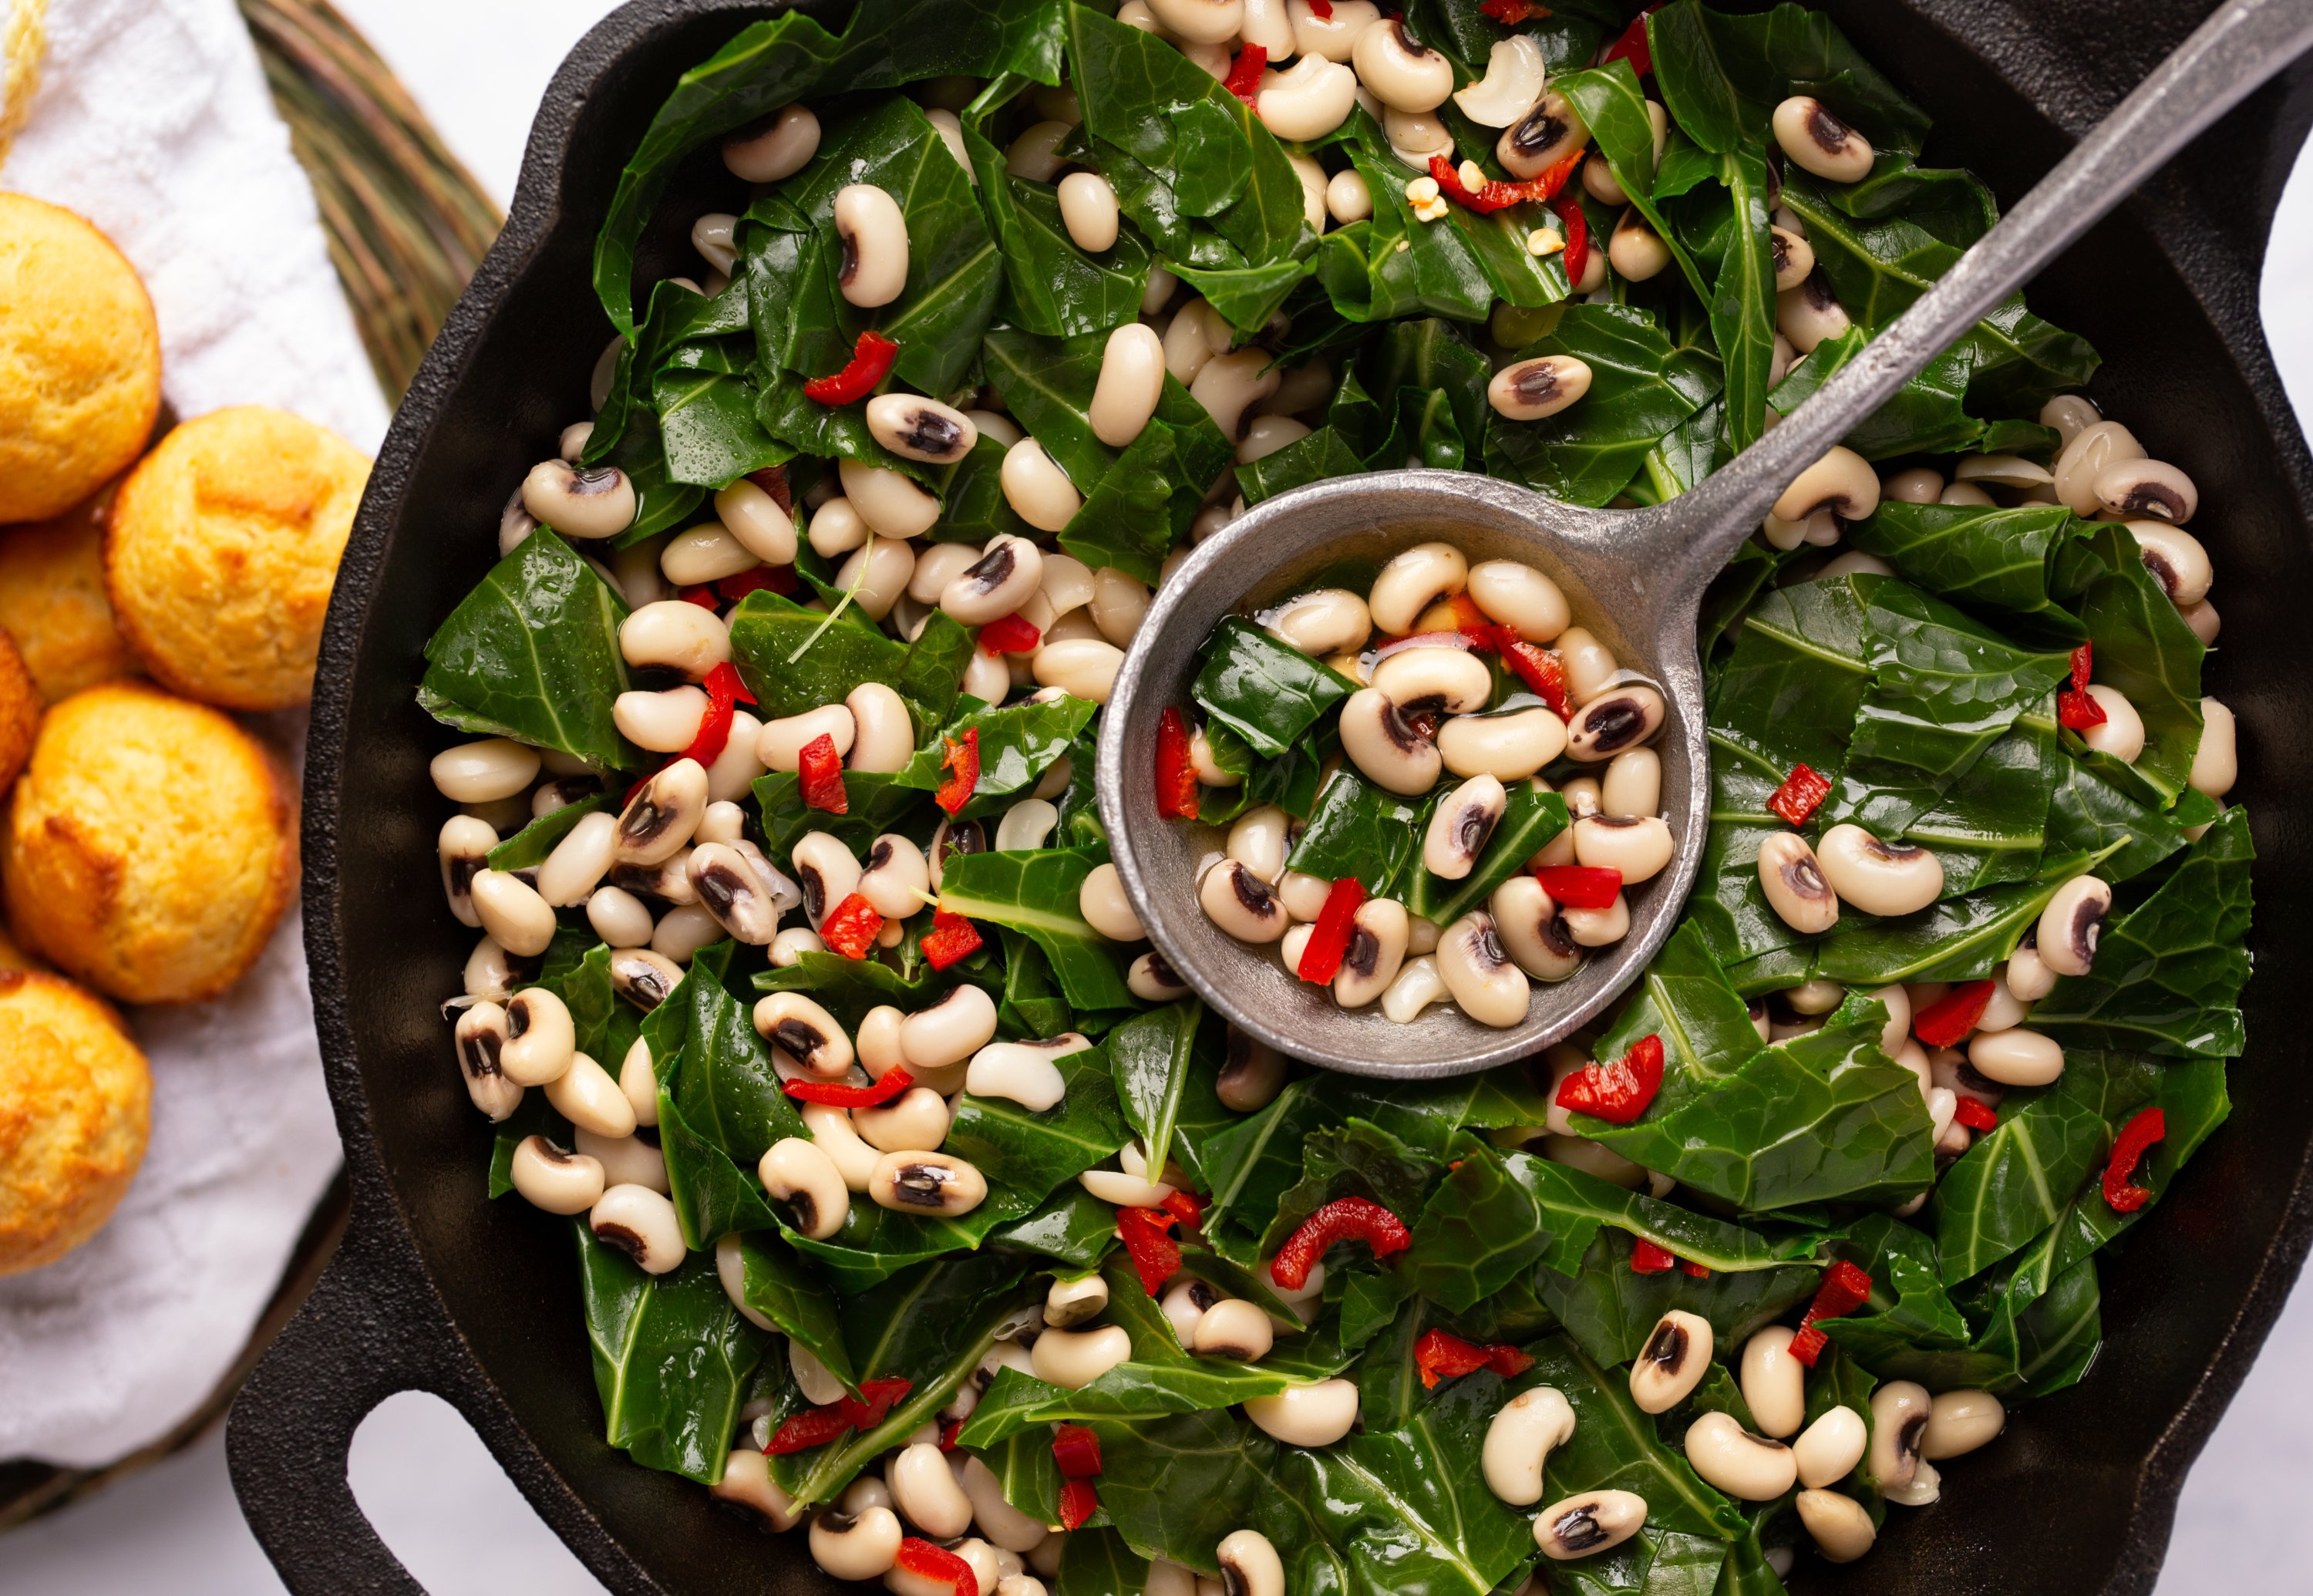 Consuming black-eyed peas and greens as the first foods eaten on New Year's Day is a custom in the U.S., more specifically the southern states. (Shutterstock photo)